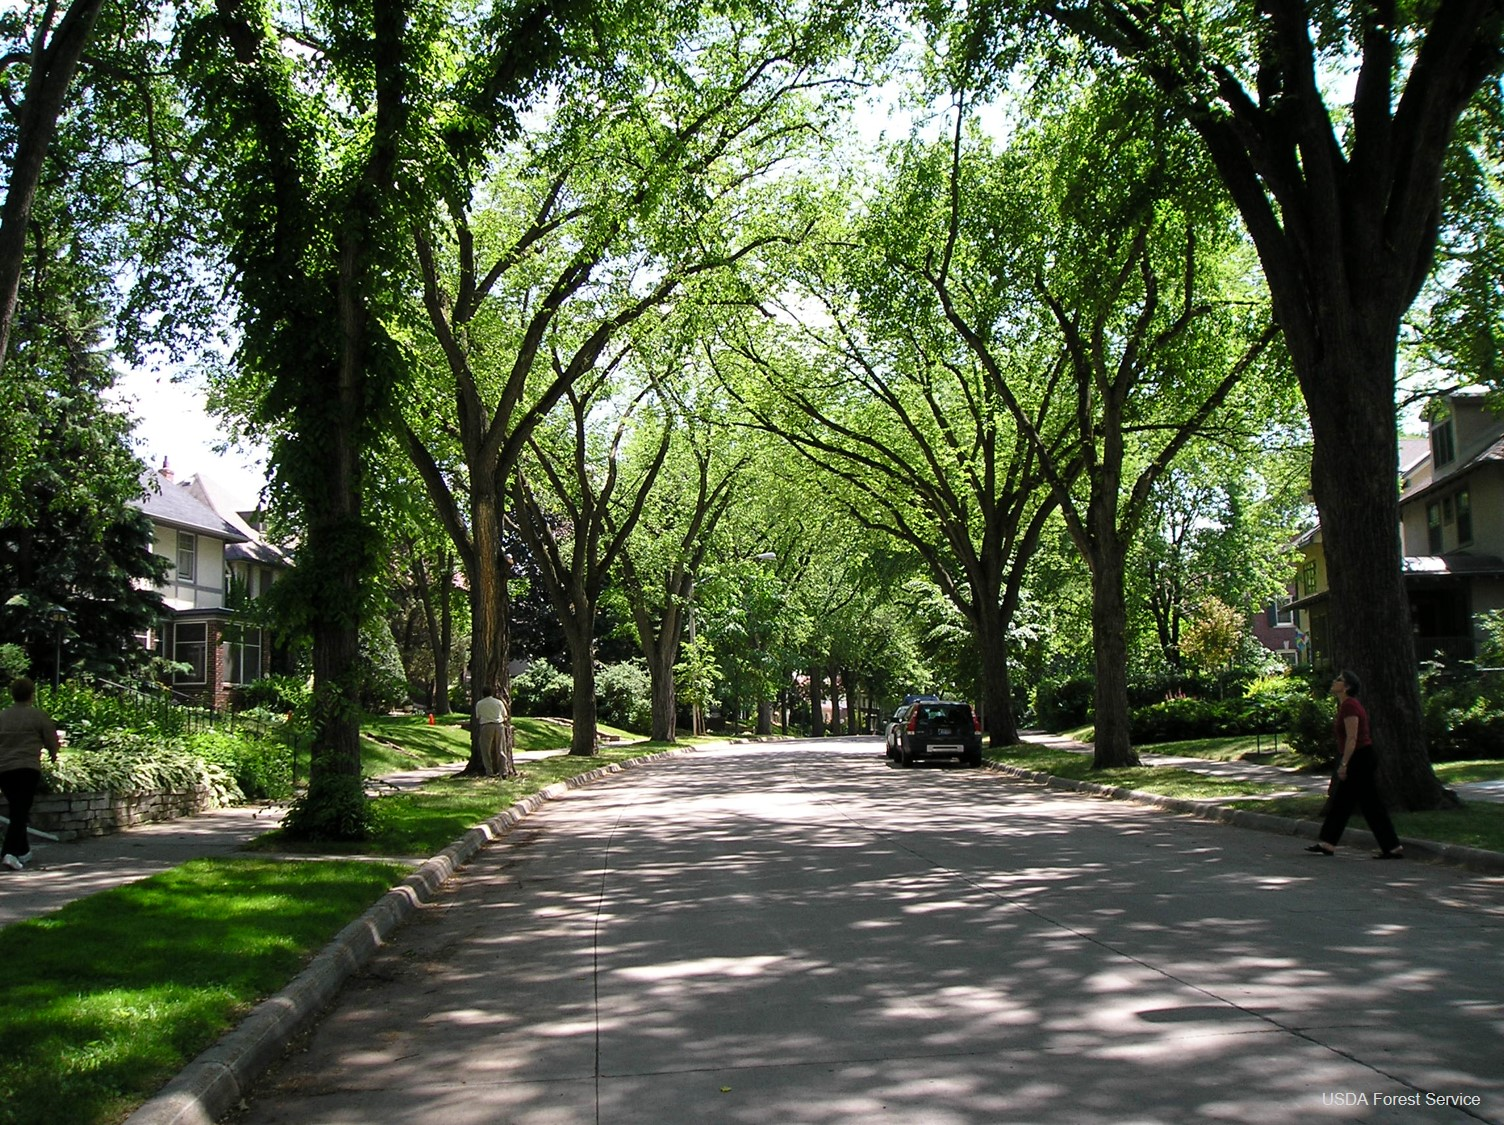 Elm trees line a residential street